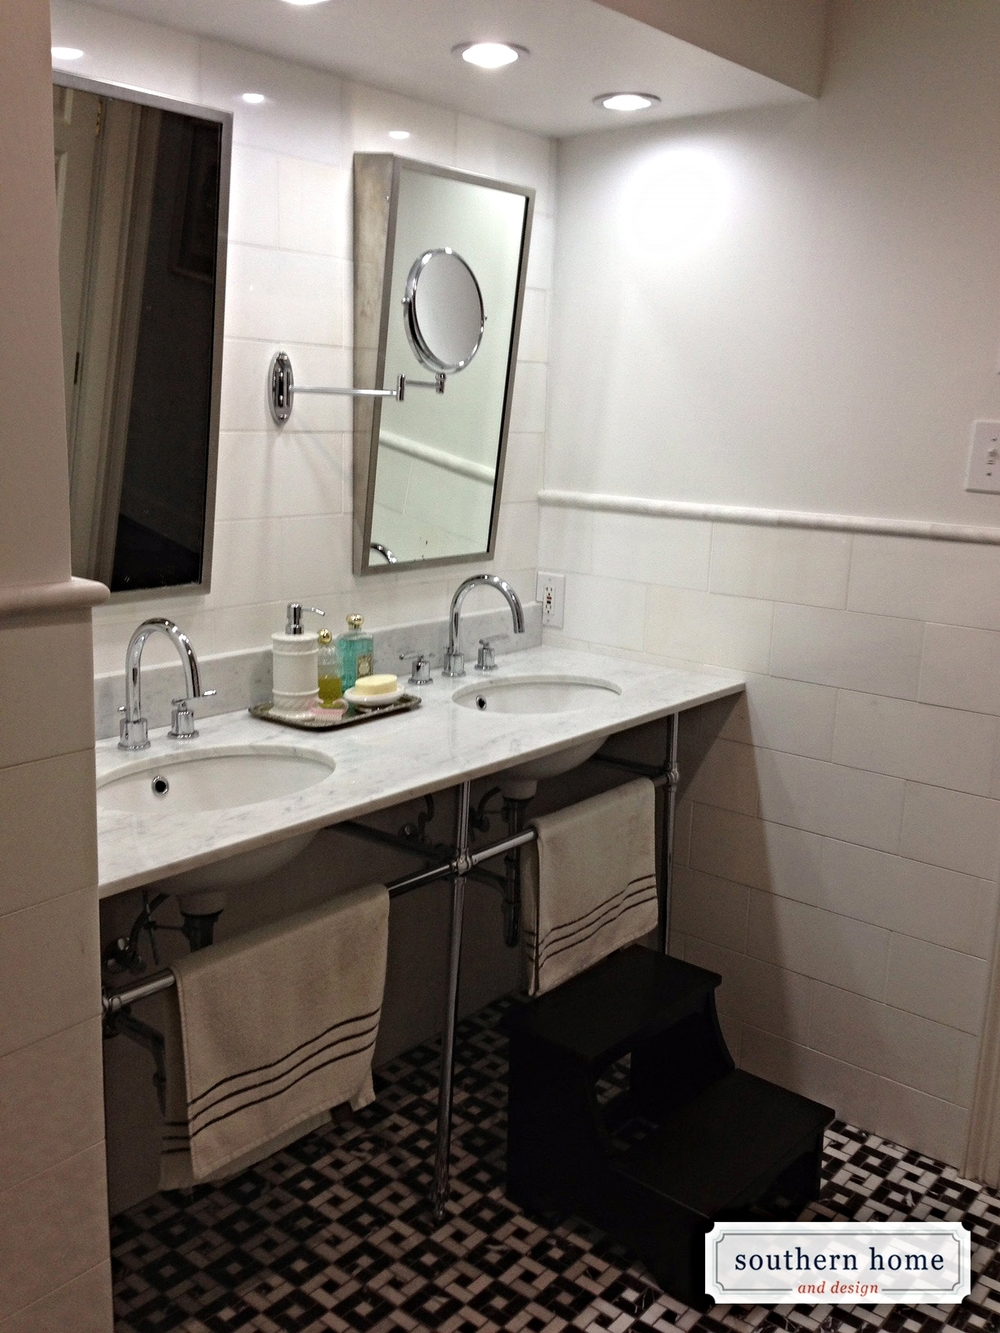 Modern, custom bathroom in Dallas. Angled mirrors, white sinks, and open design.